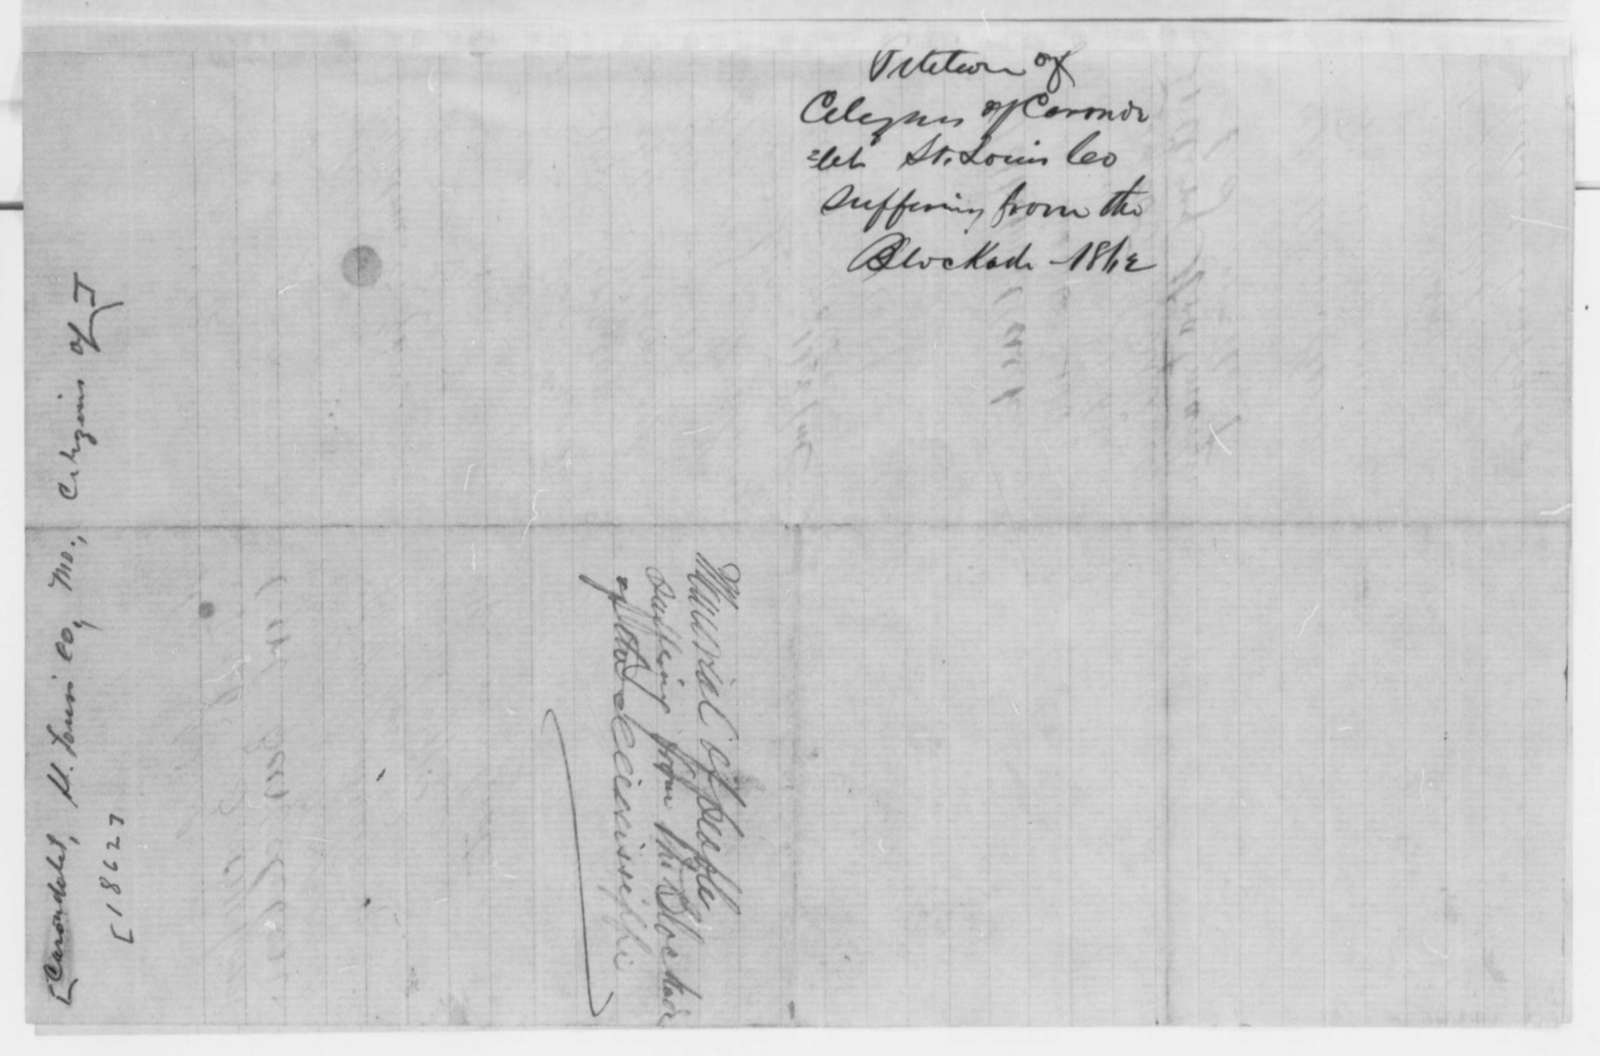 Carondelet Township Missouri Citizens to Abraham Lincoln,  1862  (Petition requesting commerce with New Orleans be resumed)